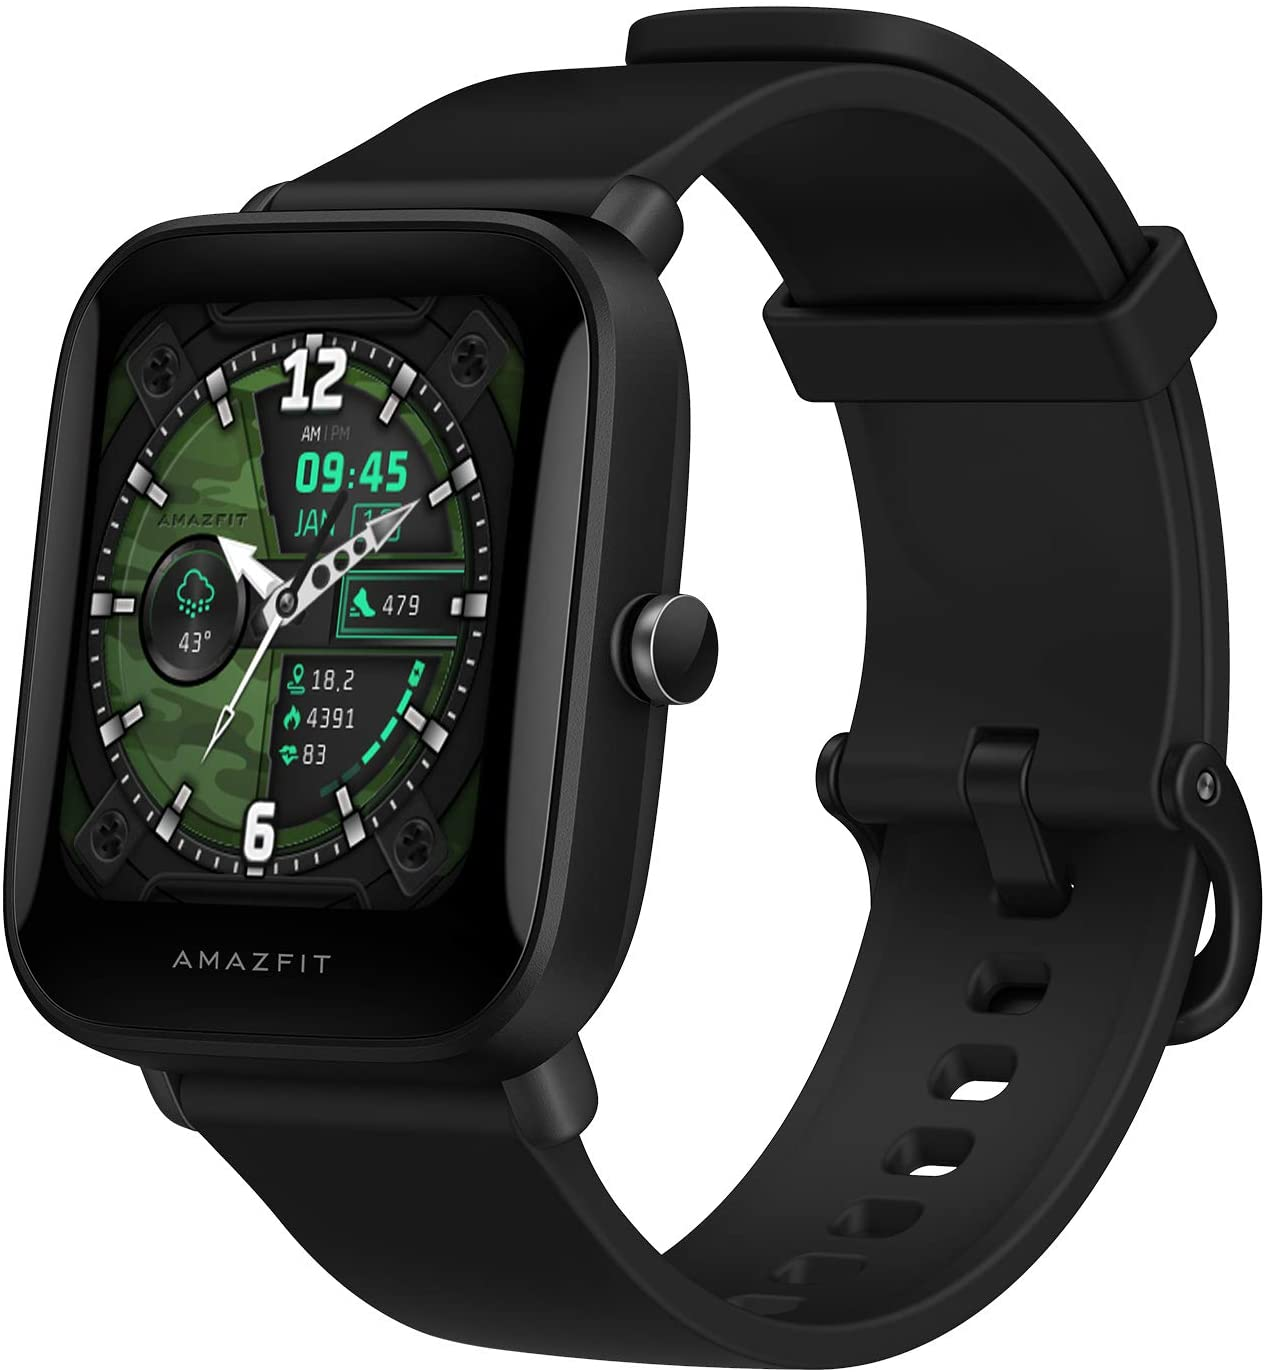 Xiaomi Amazfit POP GPS Smartwatch 1.43 inch 50 Watch Faces Color Screen 5 ATM 60+ Sports Mode Heart Rate Tracking